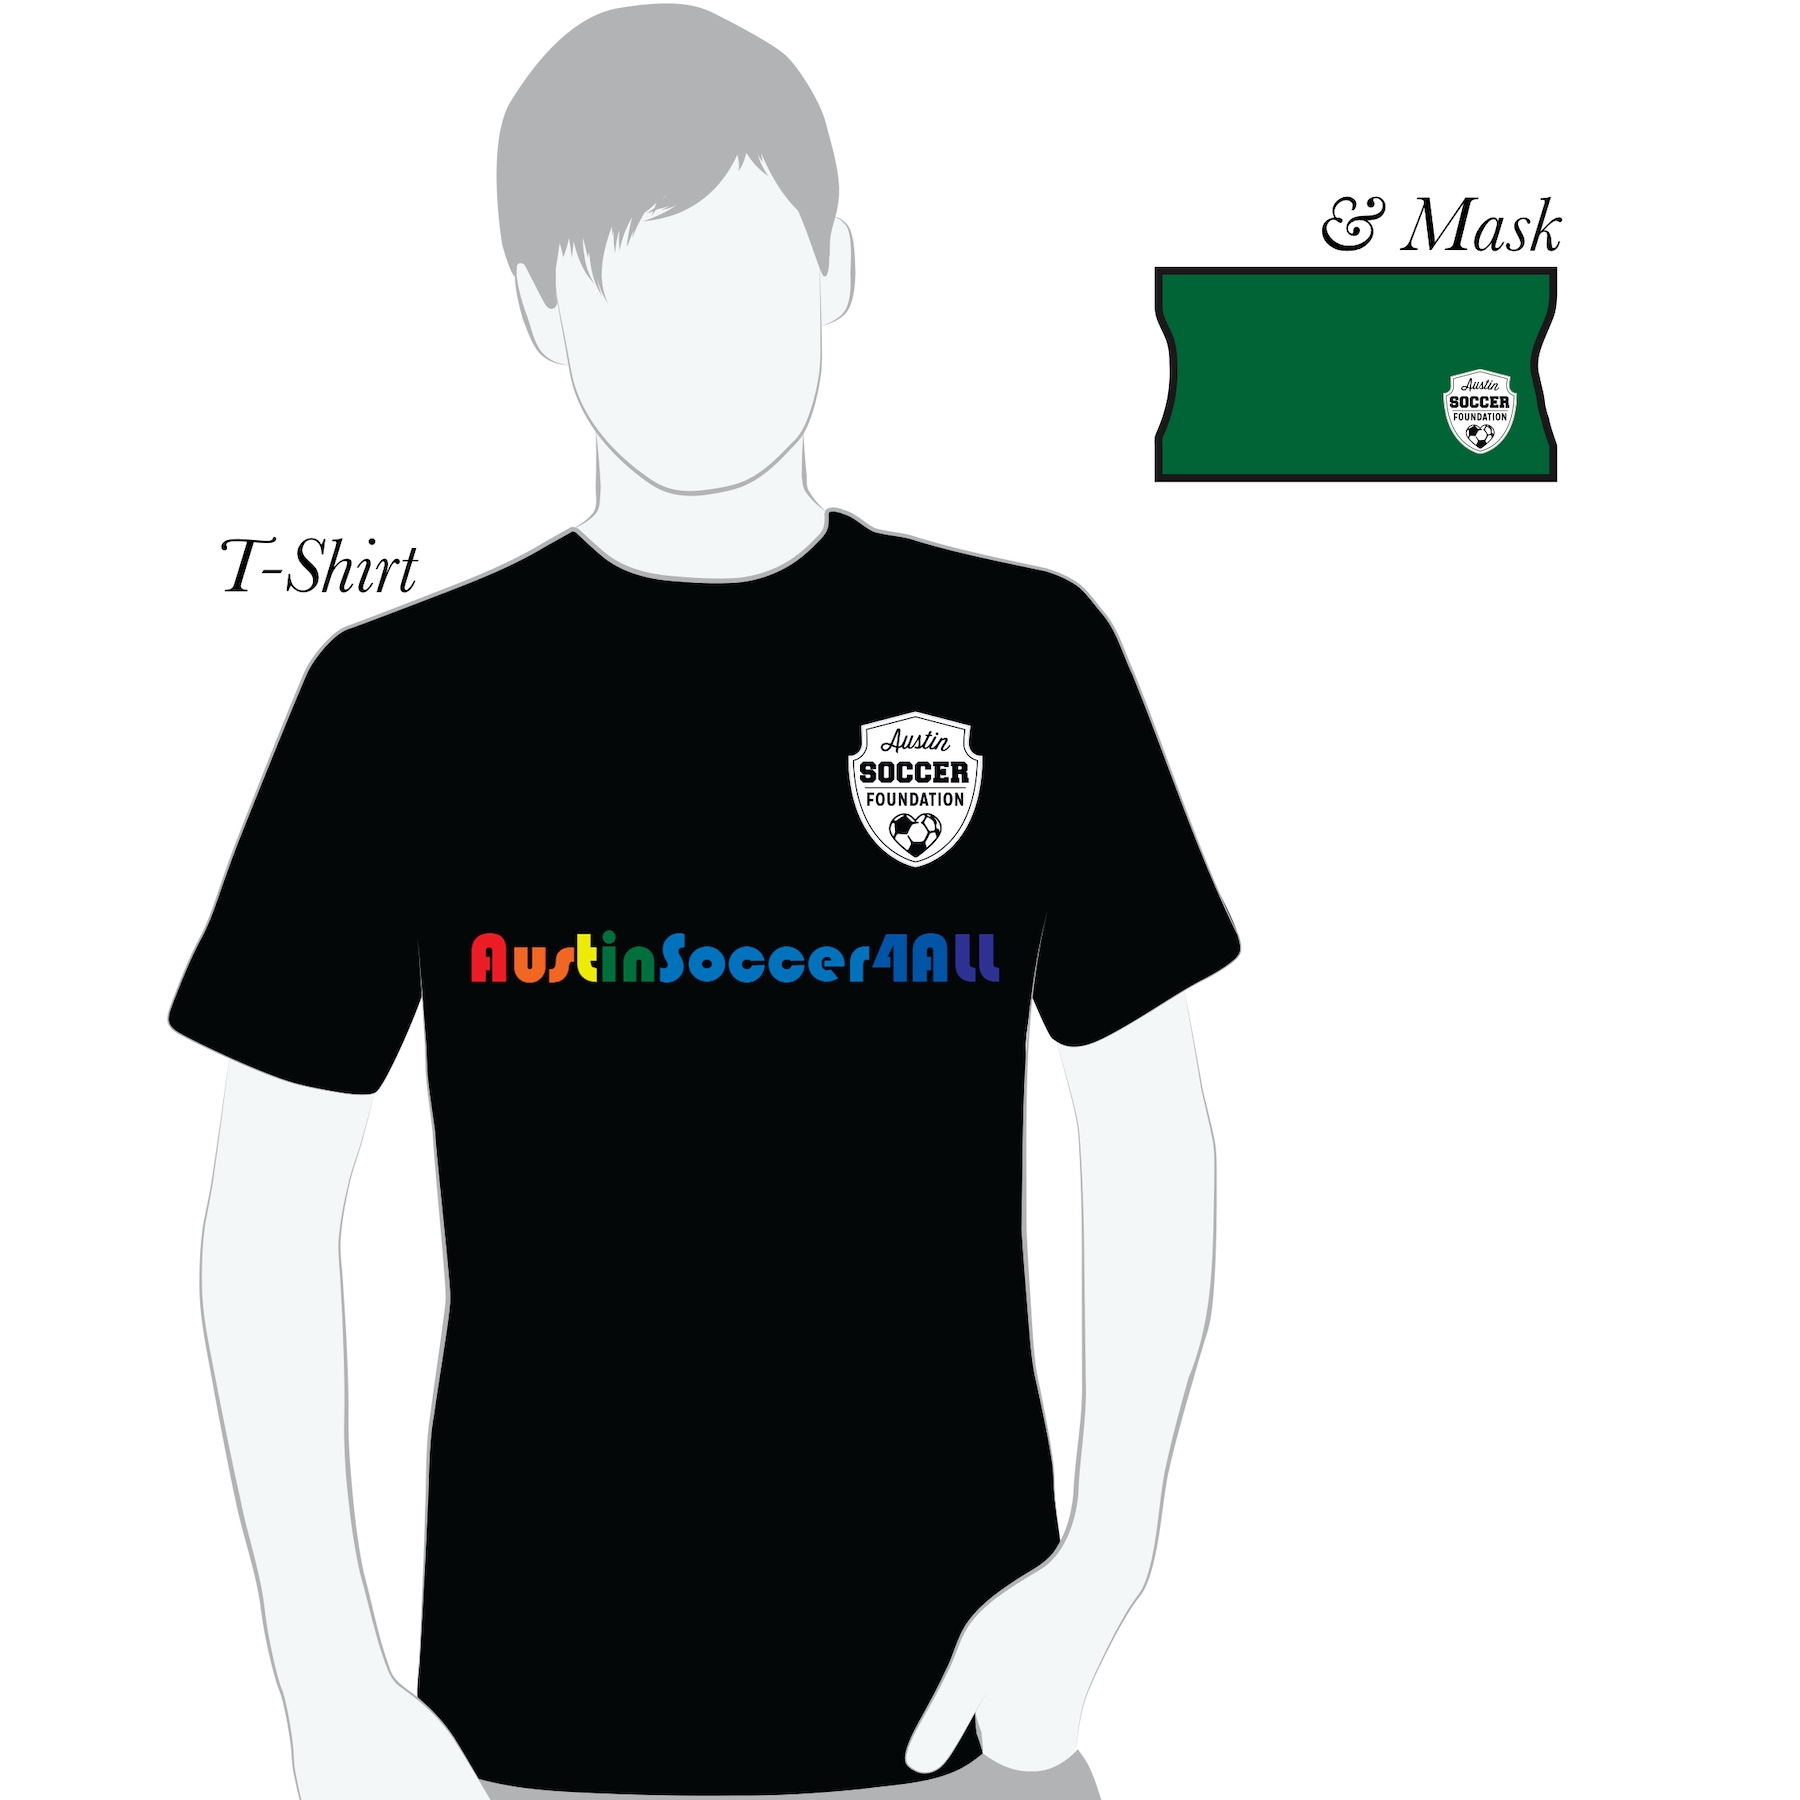 AustinSoccer4All t-shirt and mask